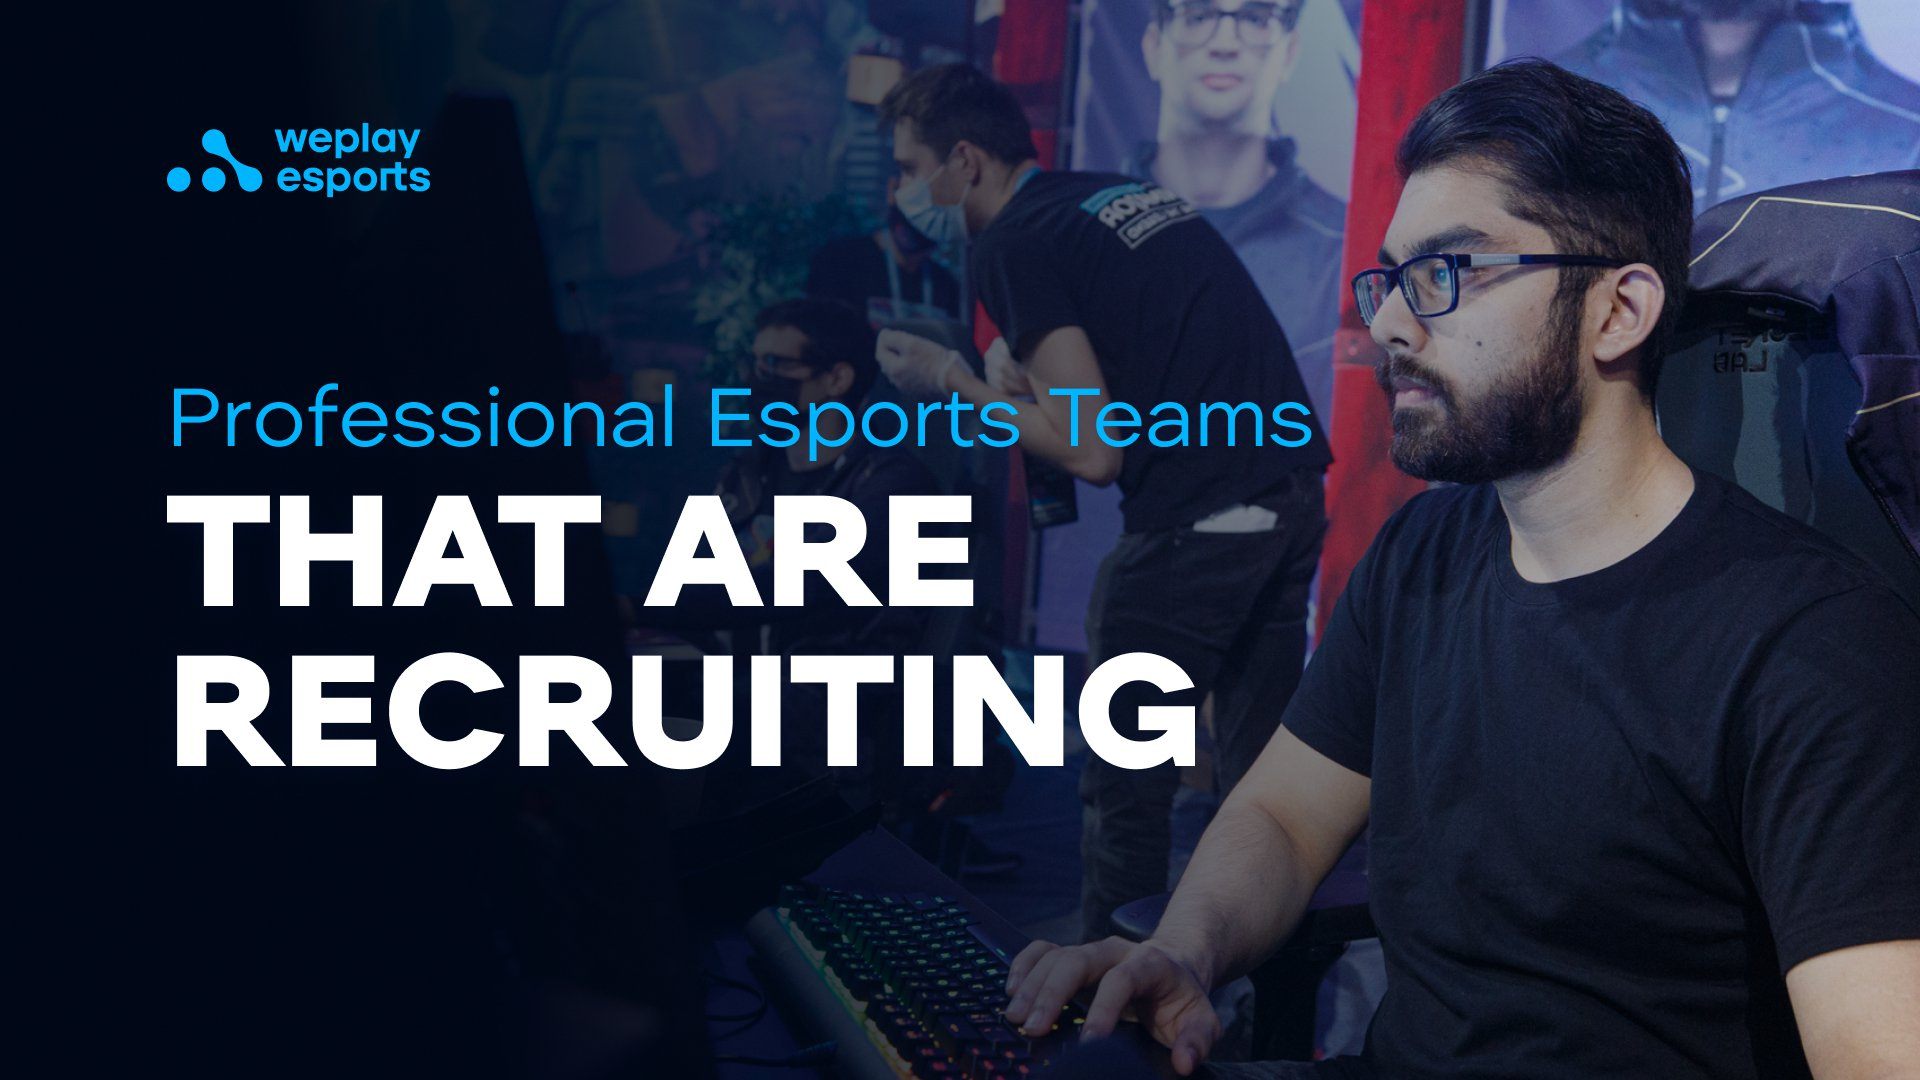 Professional Esports Teams That Are Recruiting